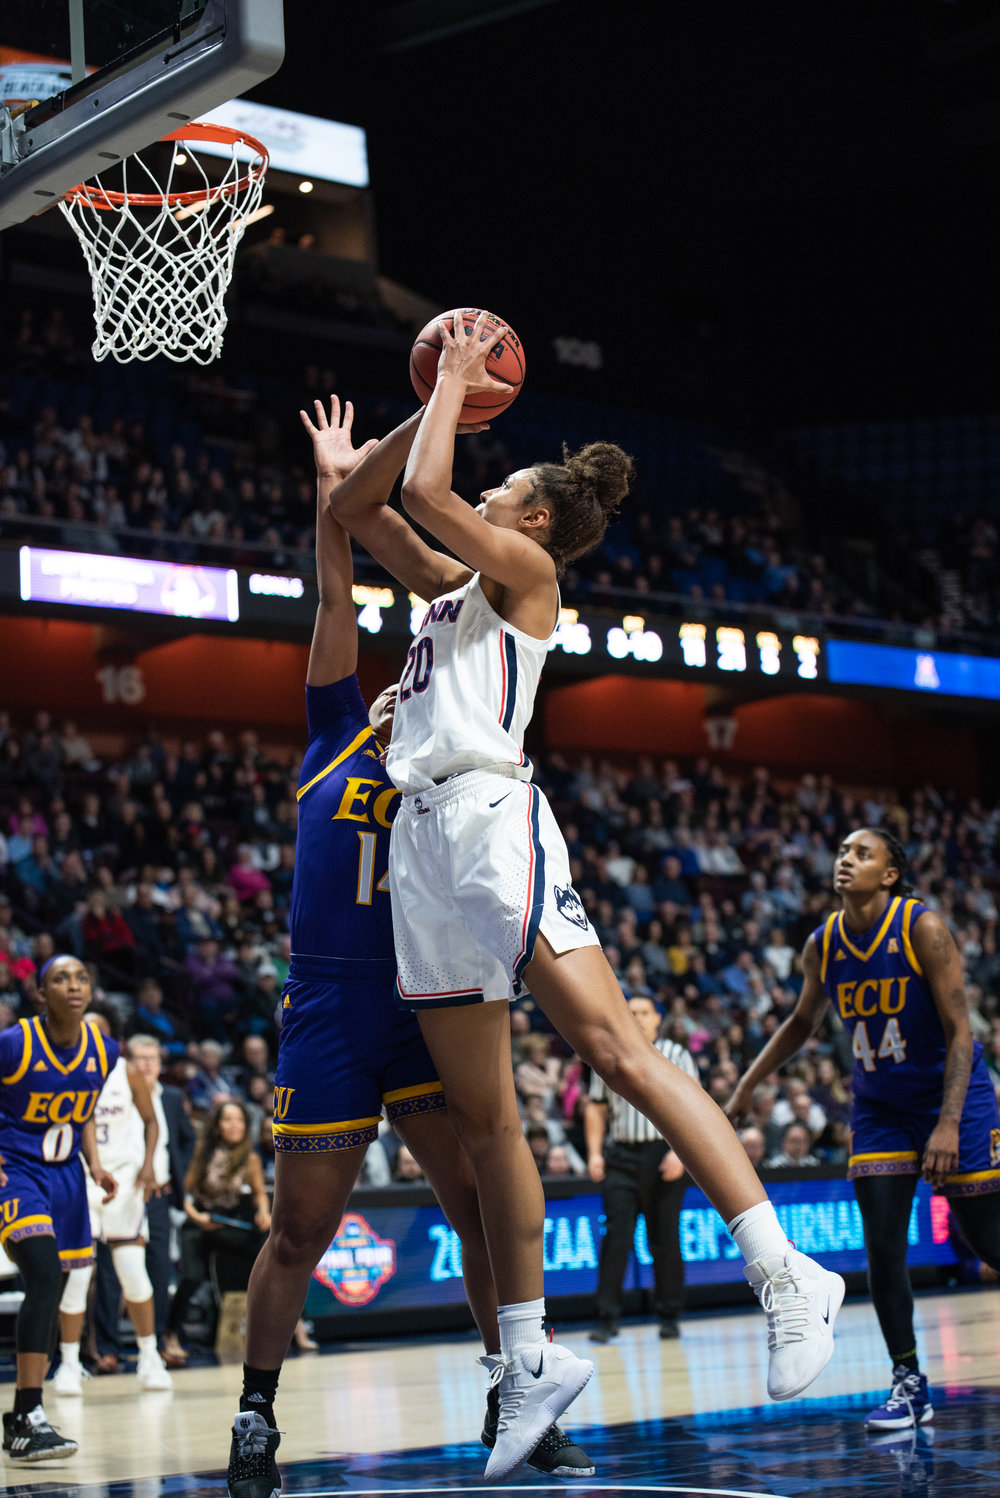 Freshman Olivia Nelson-Ododa started her second-straight game in Katie Lou Samuelson's absence and impressed with five blocks. Photo by Charlotte Lao/The Daily Campus